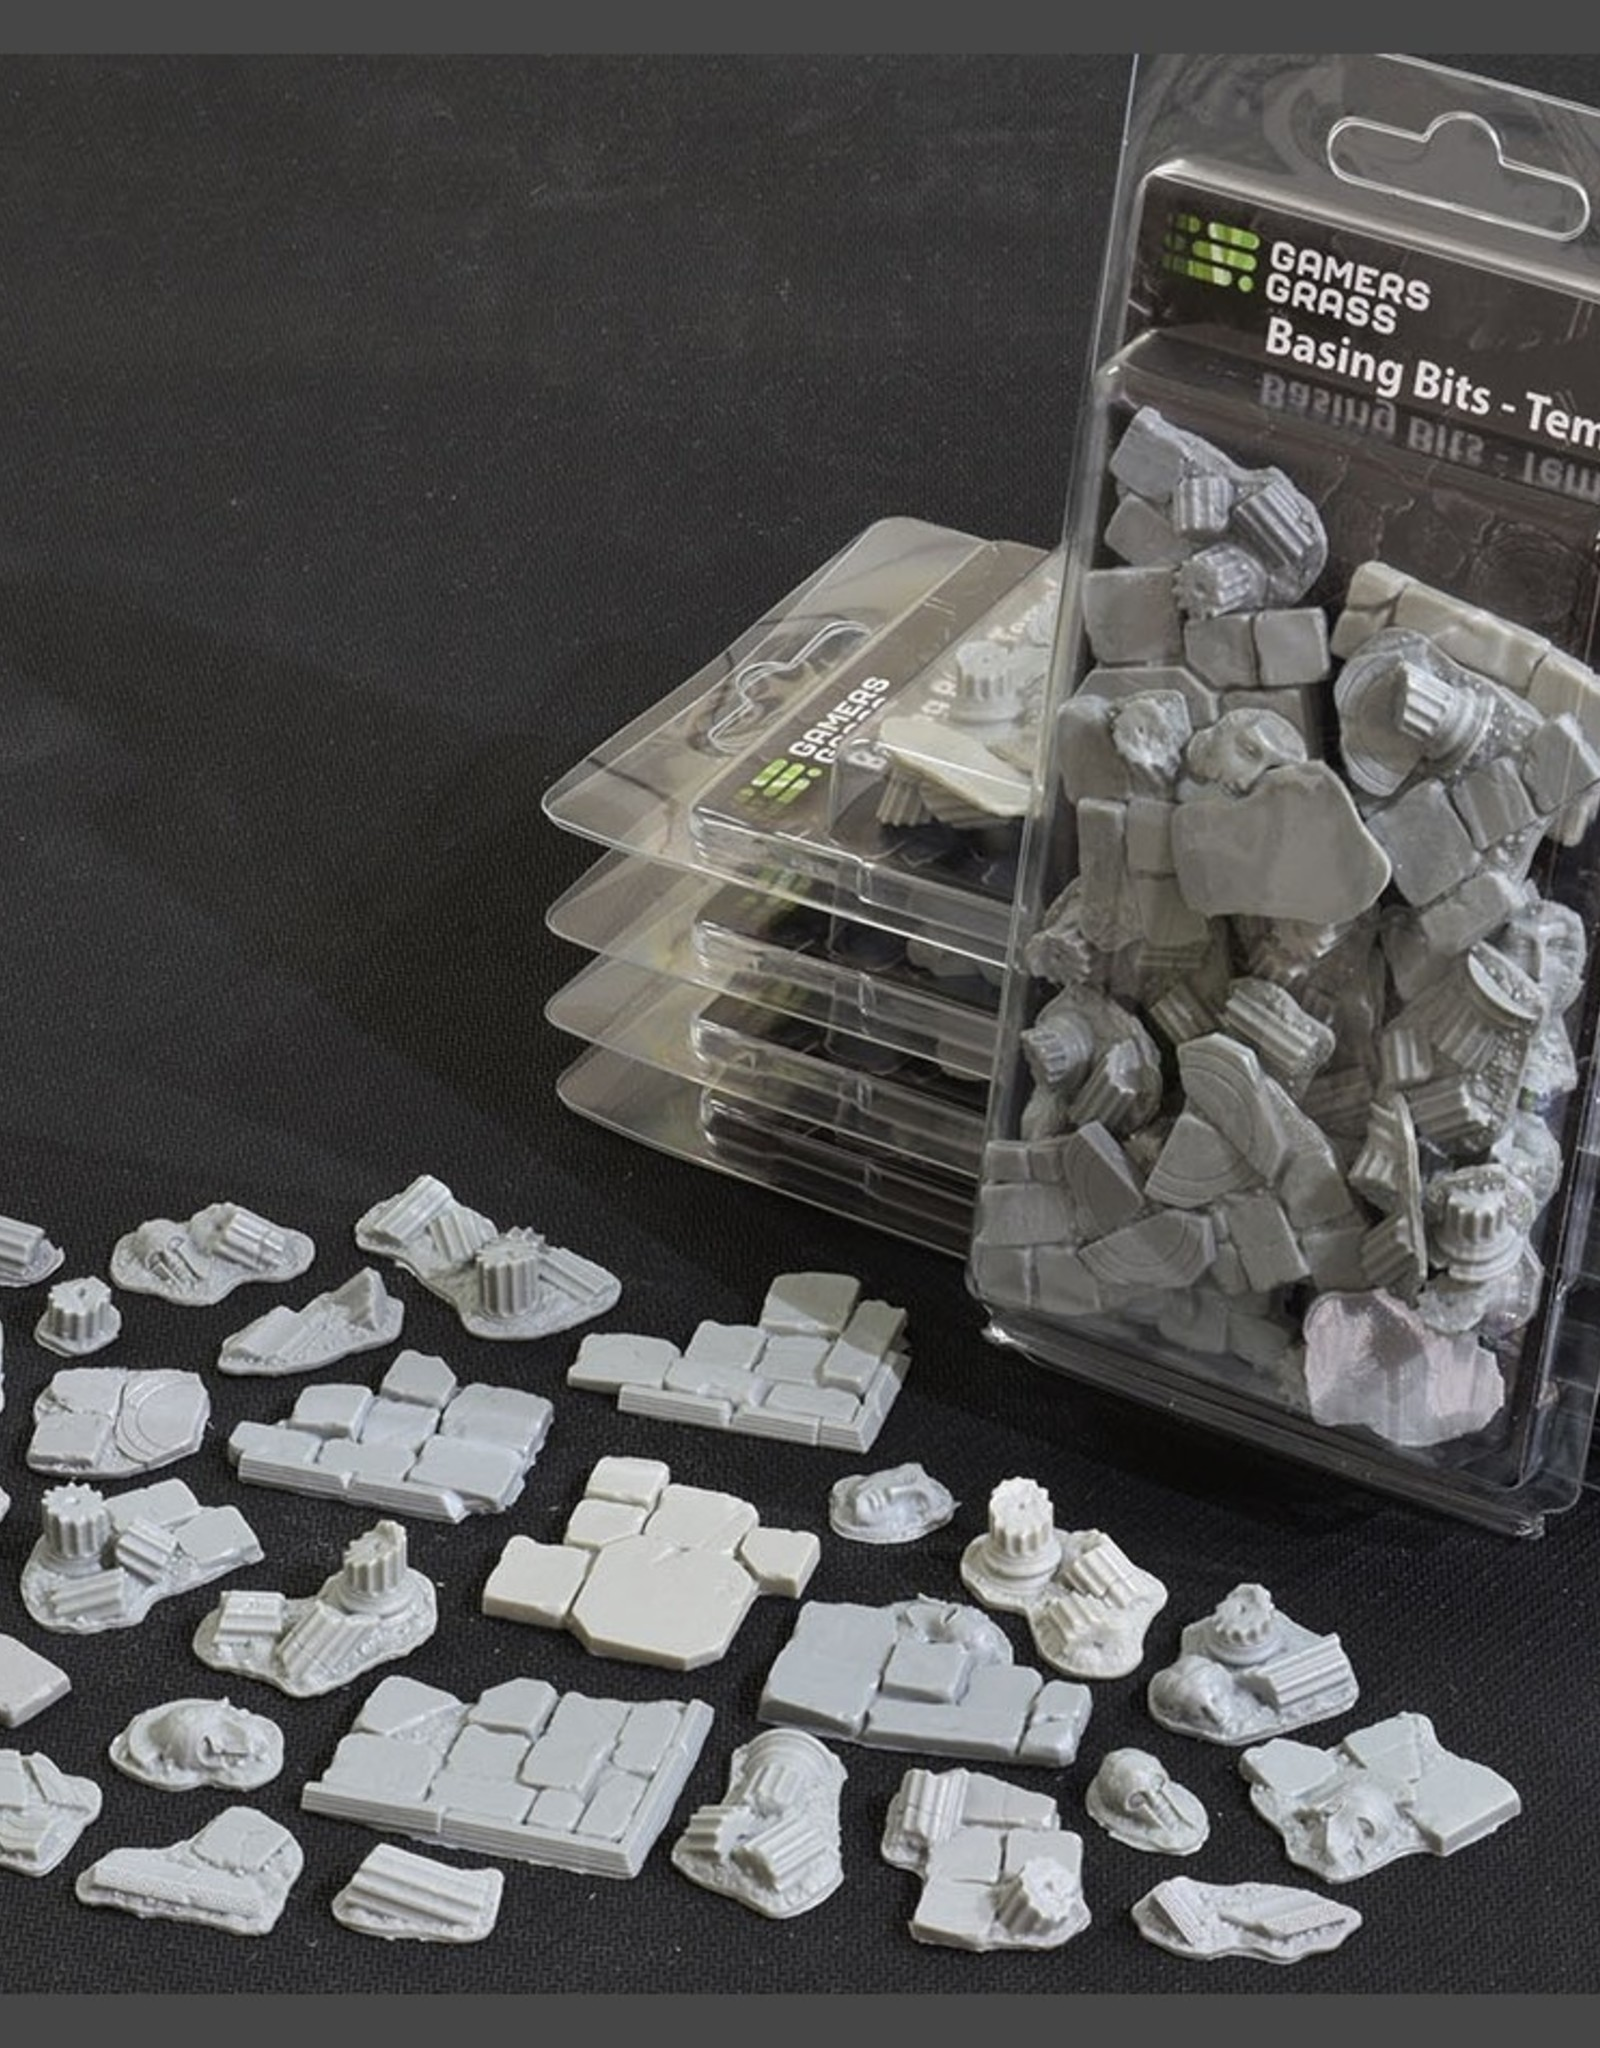 Gamers Grass Basing Bits Temple